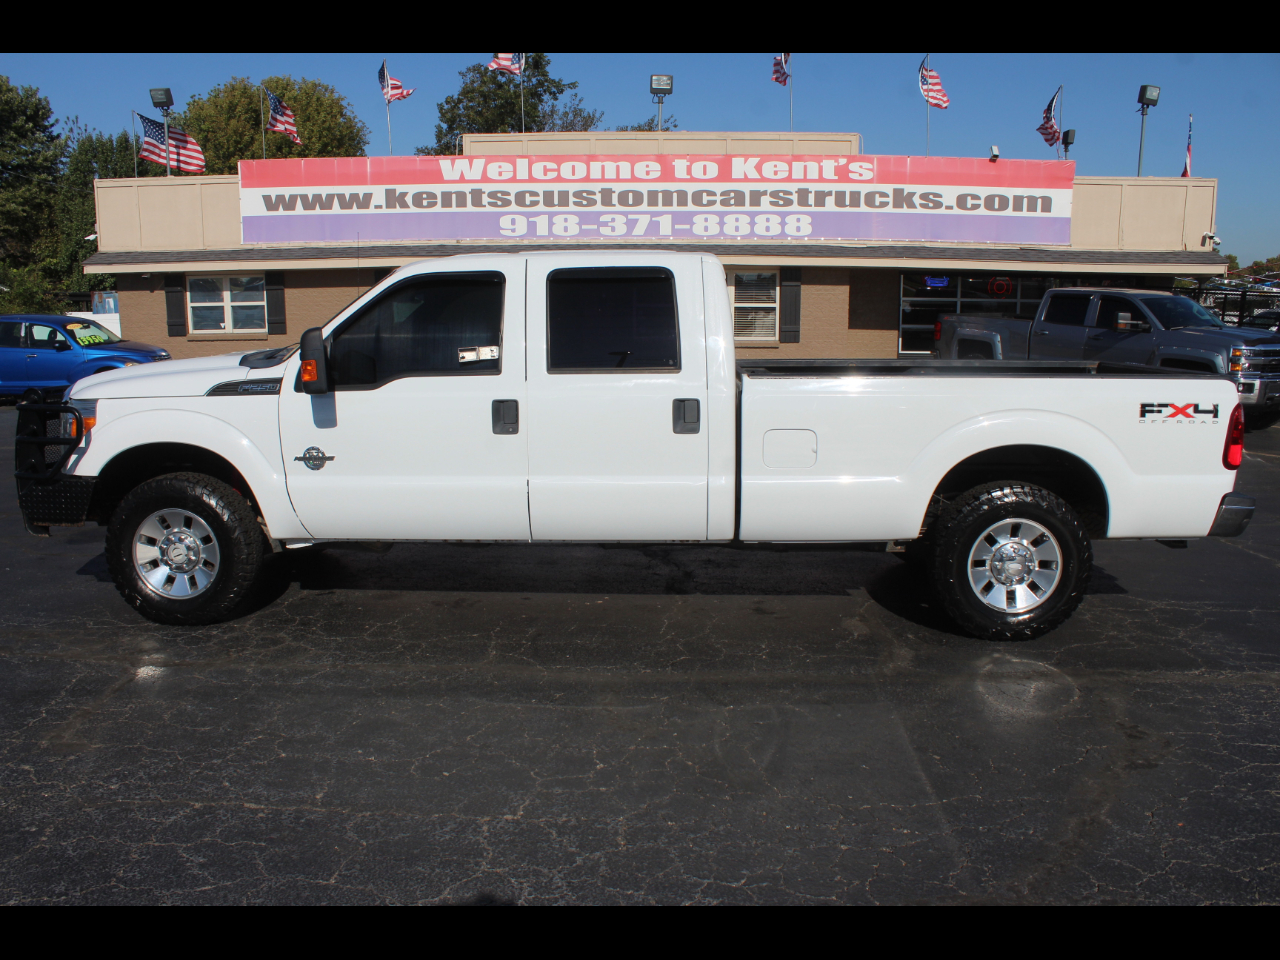 2011 Ford F-250 SD XL FX4 Crew Cab 4WD 8ft. Long Bed